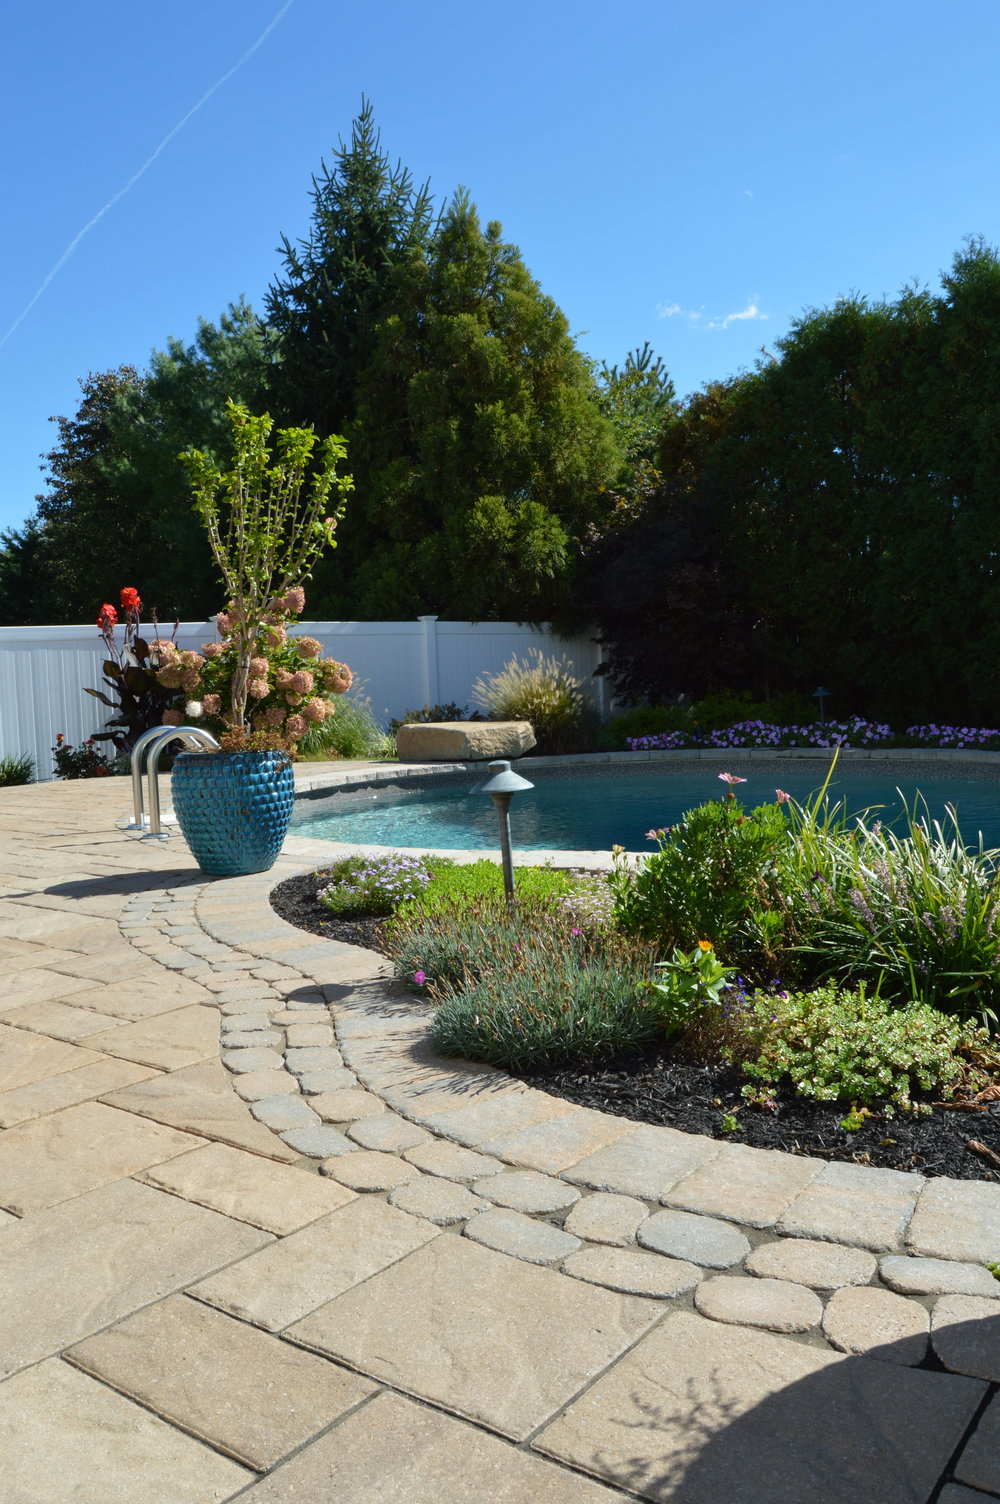 Smithtown, NY swimming pool and fire pit